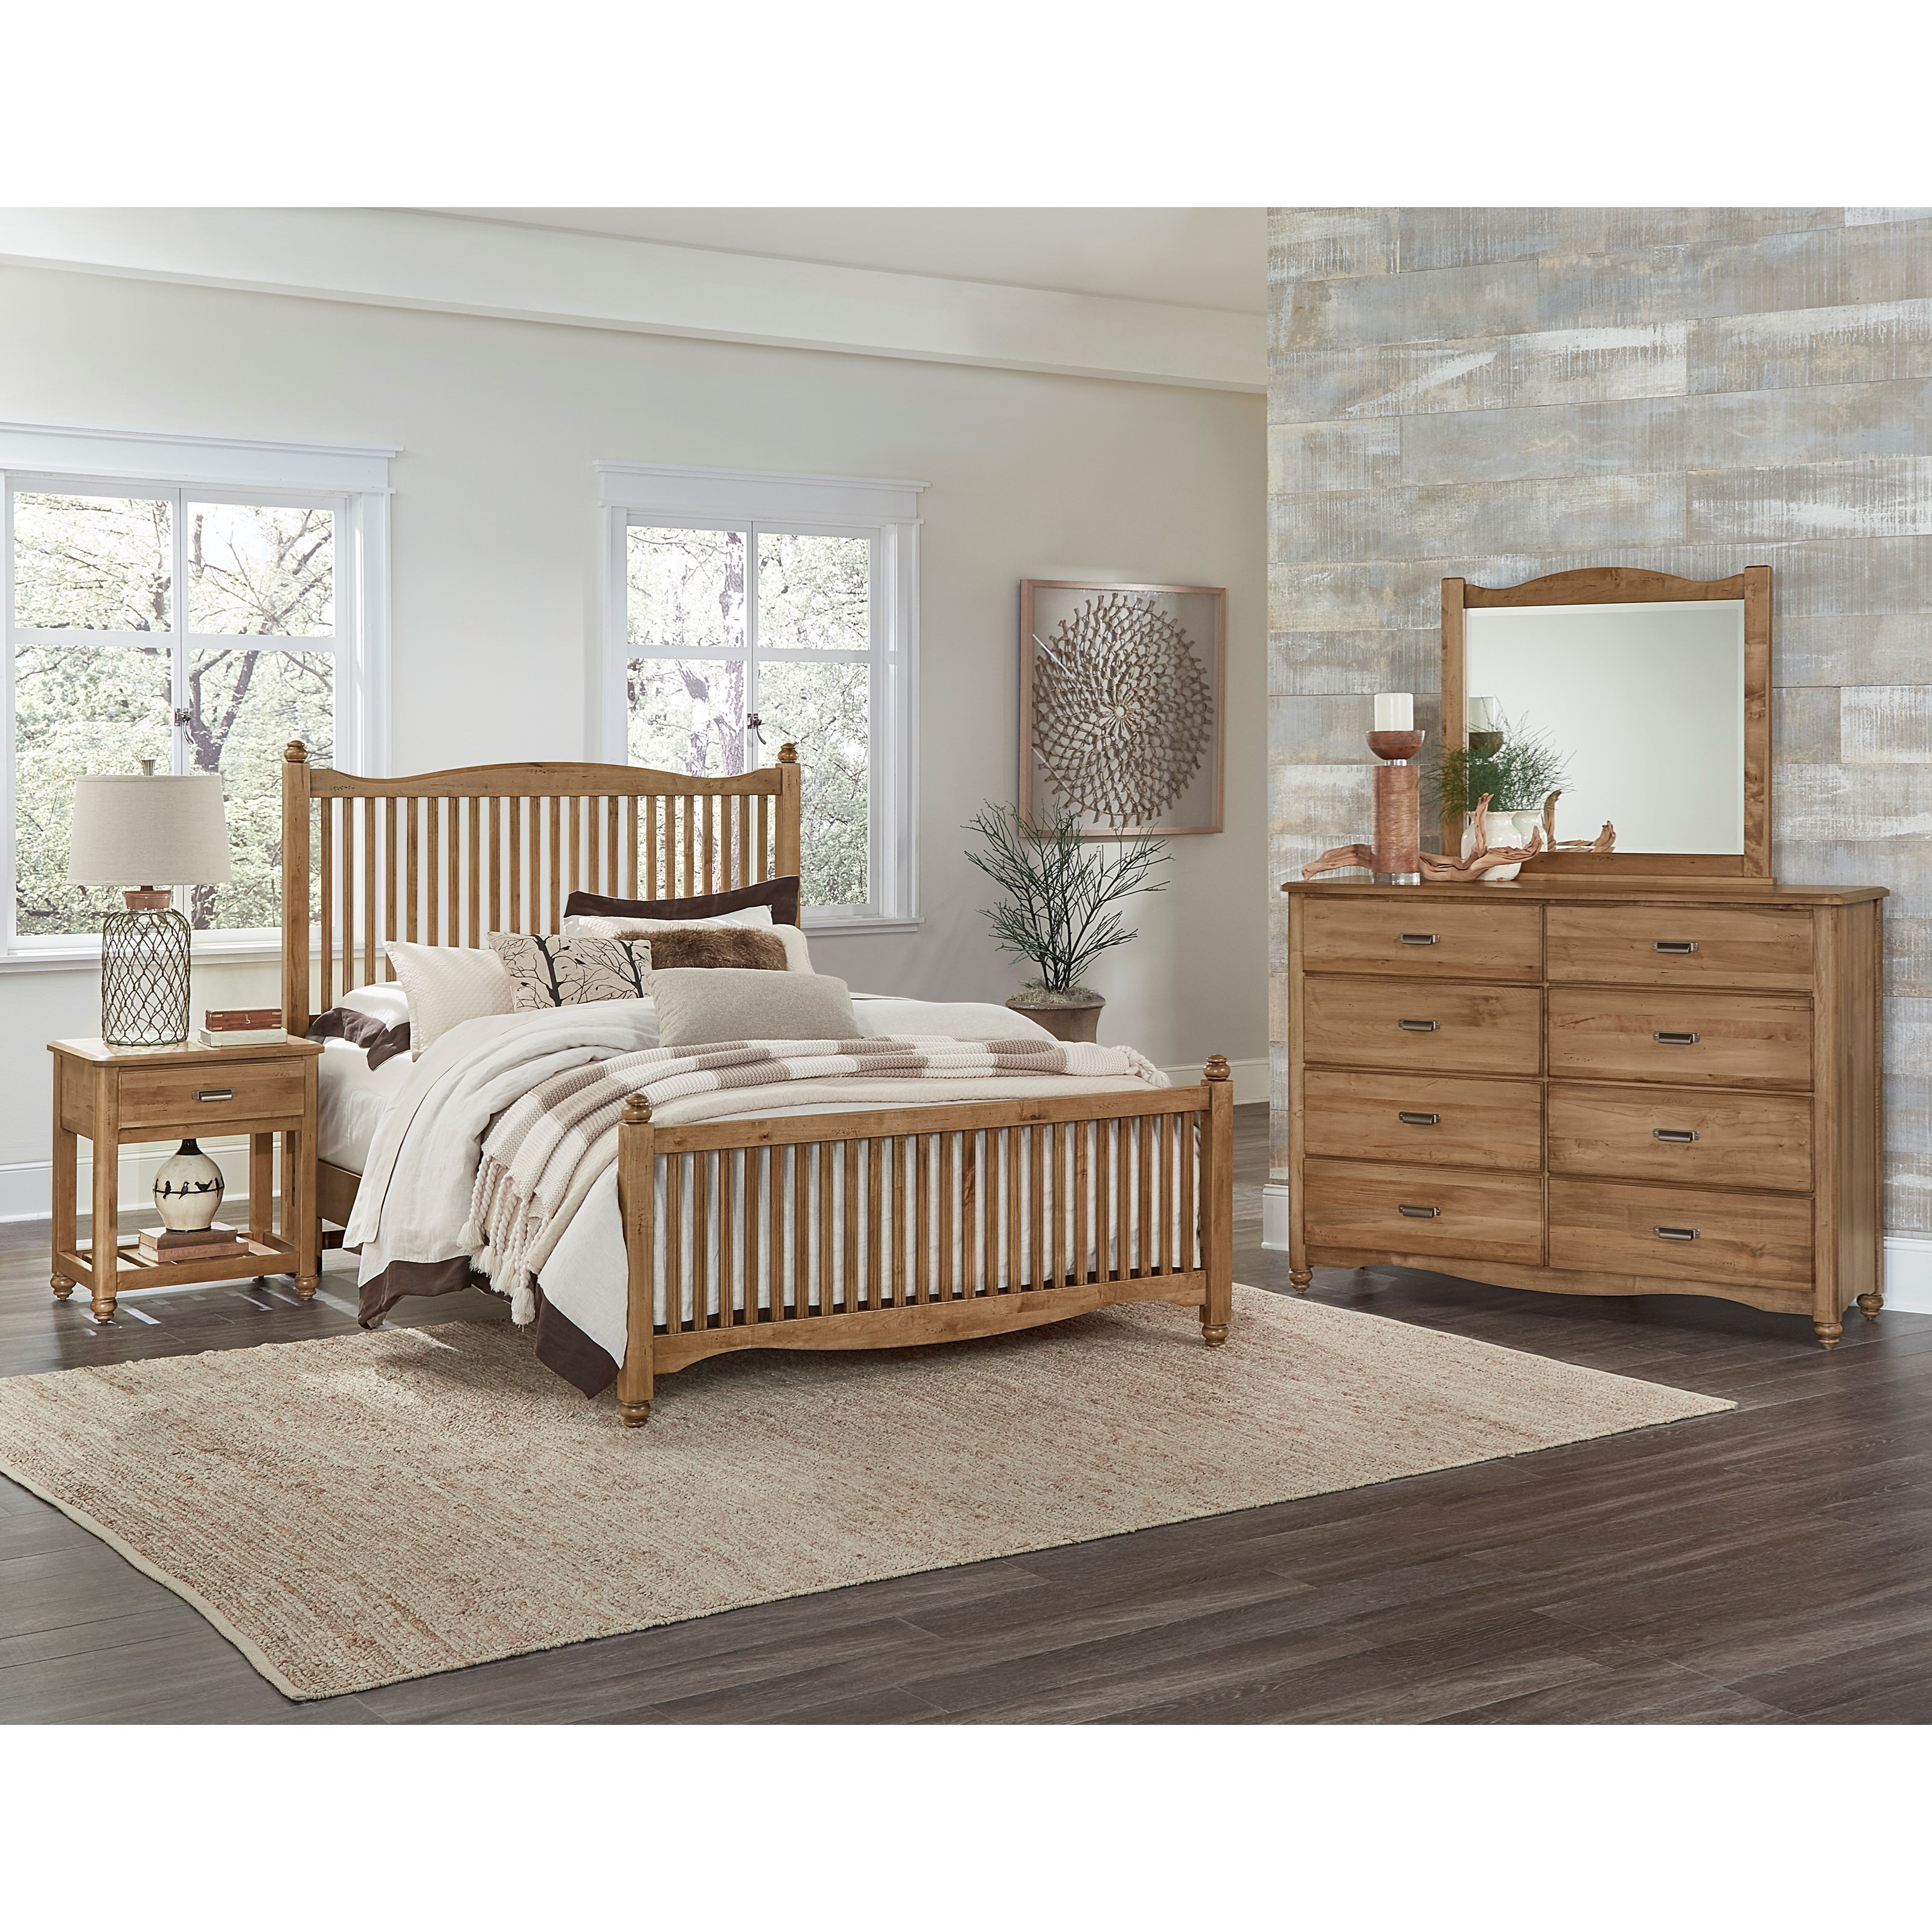 Vaughan Bassett American Maple Twin Bedroom Group - Item Number: 402 T Bedroom Group 1